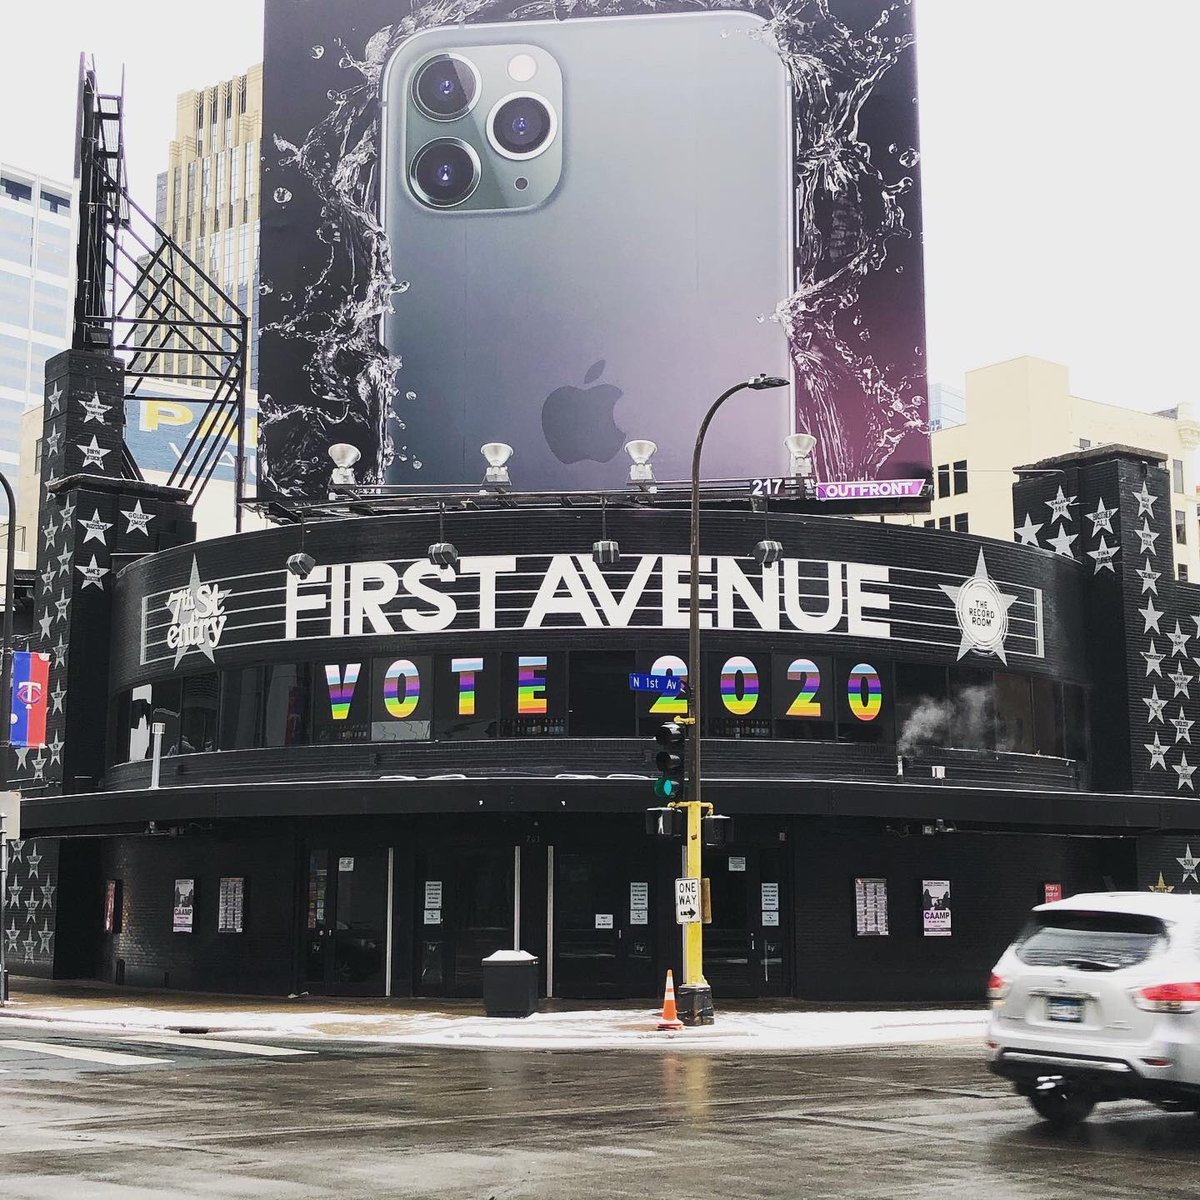 Hell Yeah we swung by @FirstAvenue too